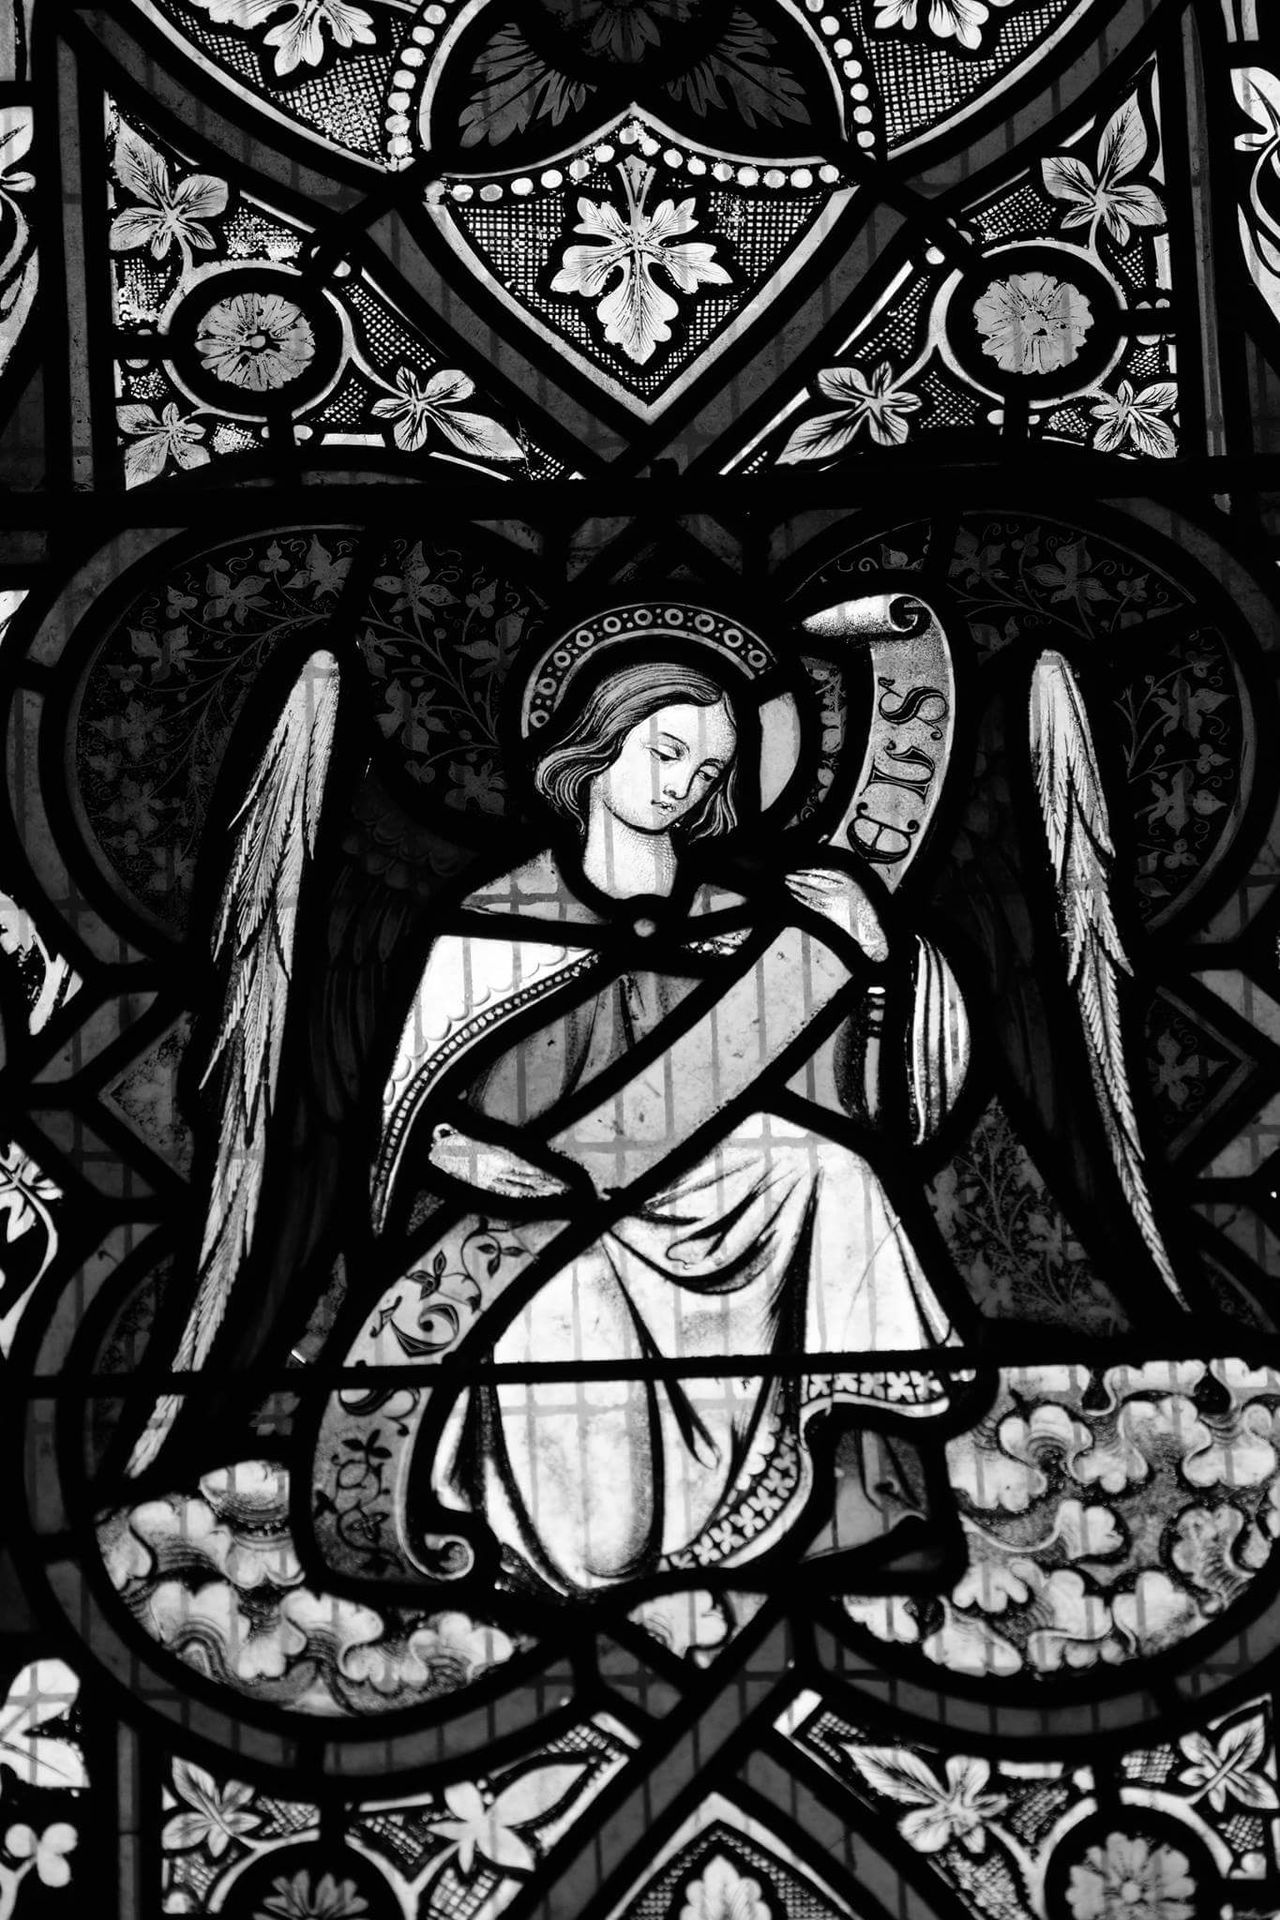 Church Stained Glass Window Close-up No People Backgrounds Indoors  Day Blackandwhite Traditon Religion And Beliefs Black And Grey Indoors  Closeup Selective Focus Scenics Angels